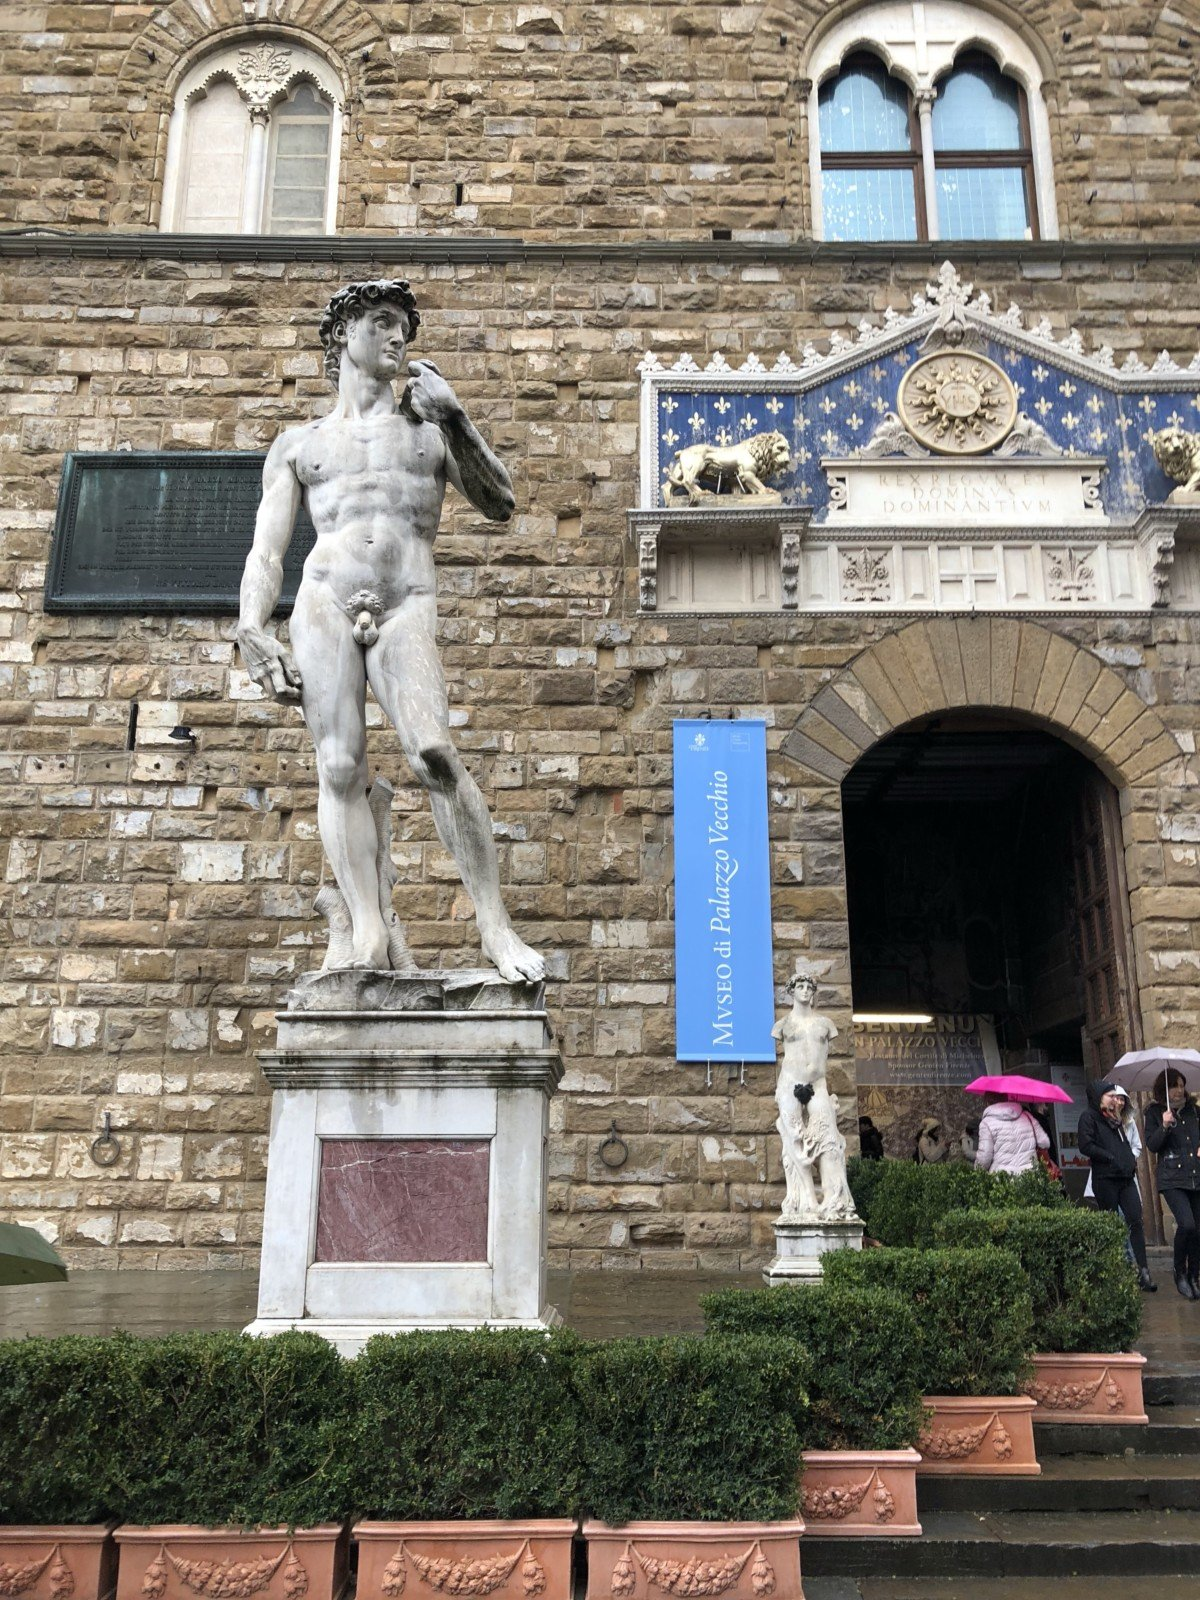 Piazza della Signoria with its copy of Michelangelo's David statue